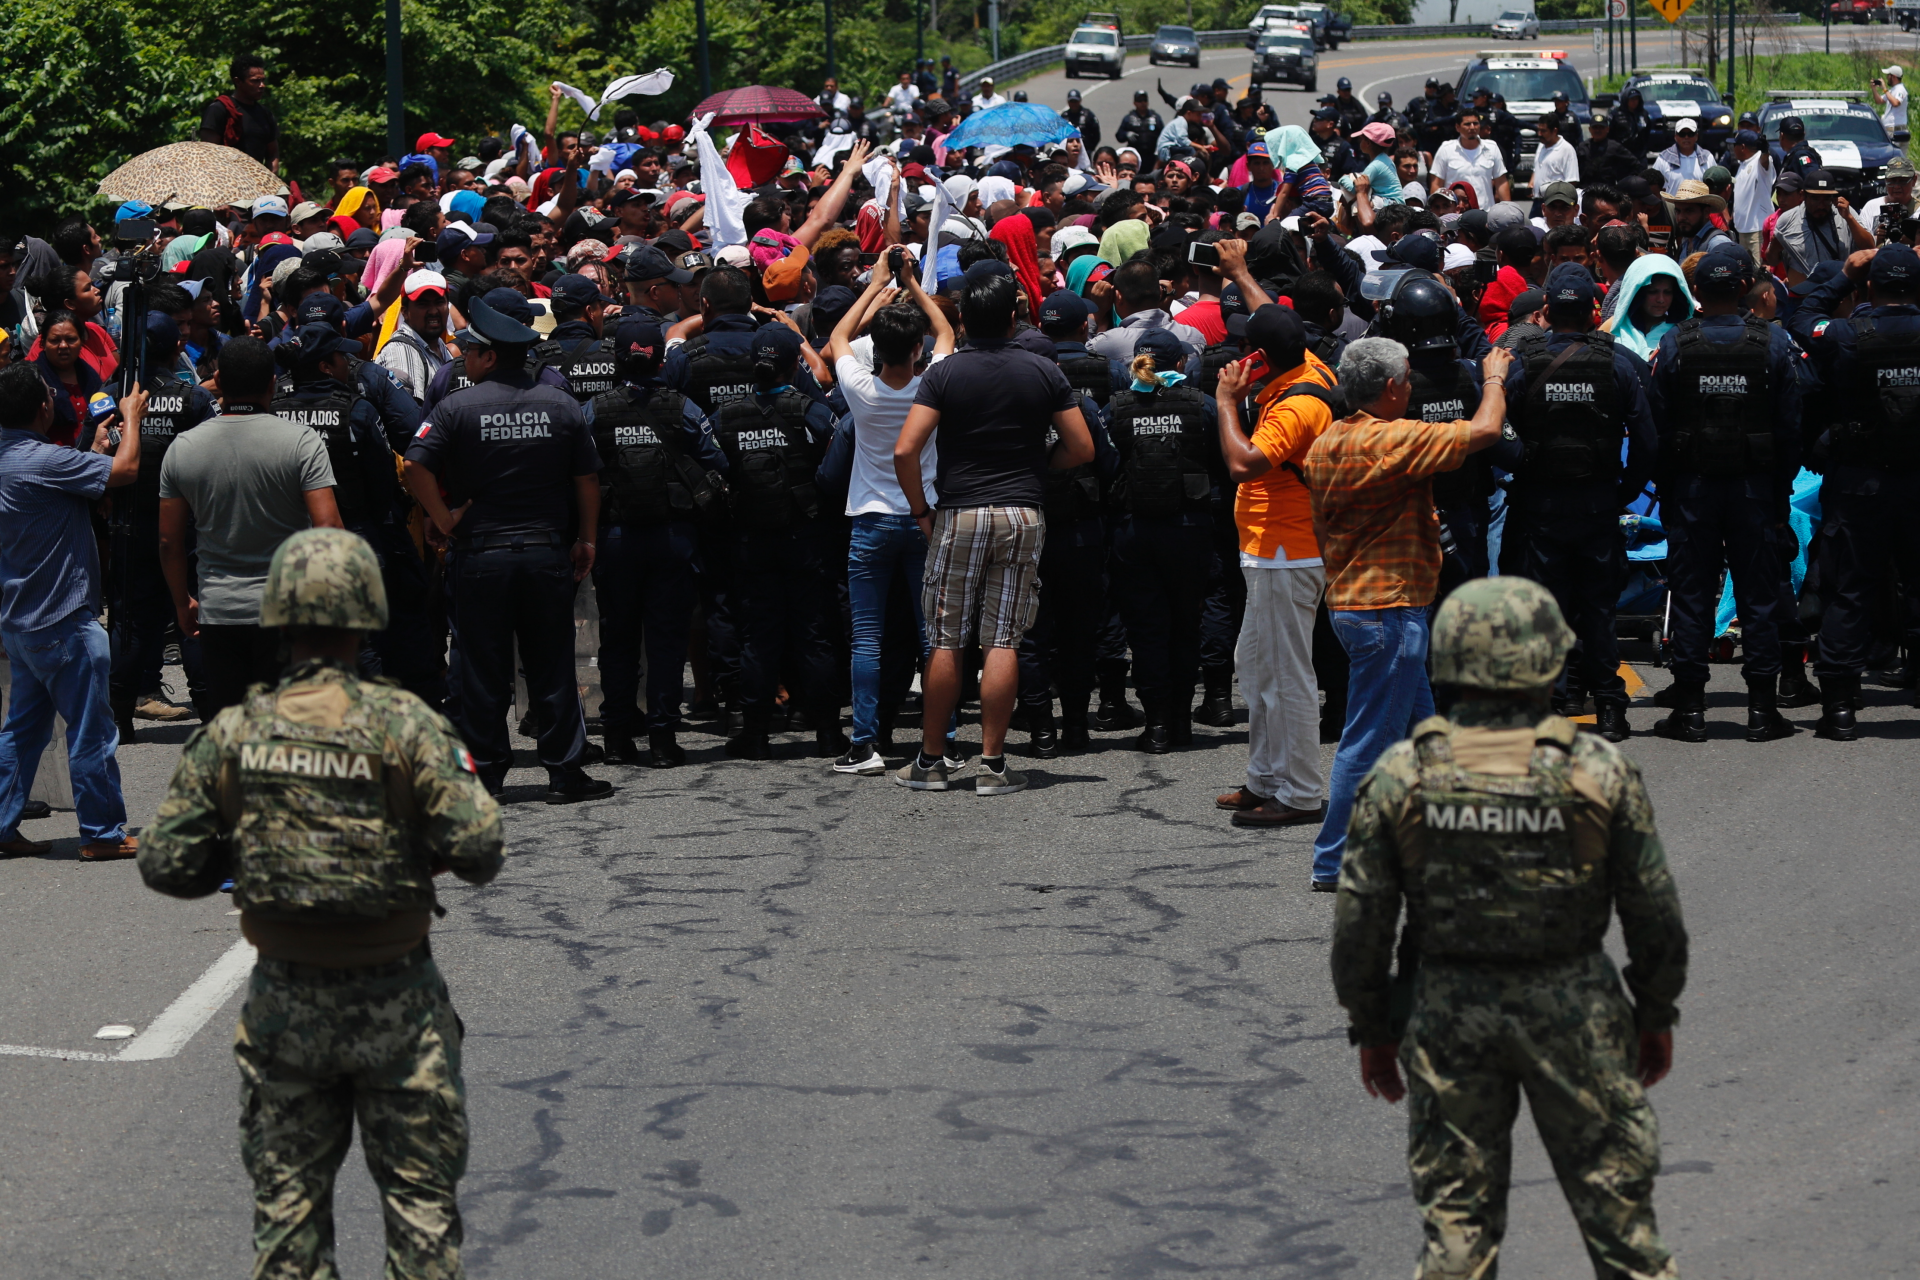 Westlake Legal Group ContentBroker_contentid-7505acb09ccc403c802bdf3199a83755 Mexico officials intercept about 1,000 migrants on highway MARCO UGARTE fox-news/world/world-regions/americas fox-news/world fox-news/us/immigration fnc/world fnc Associated Press article 707f3c69-eee3-5082-87b6-b1ee49ea1d96